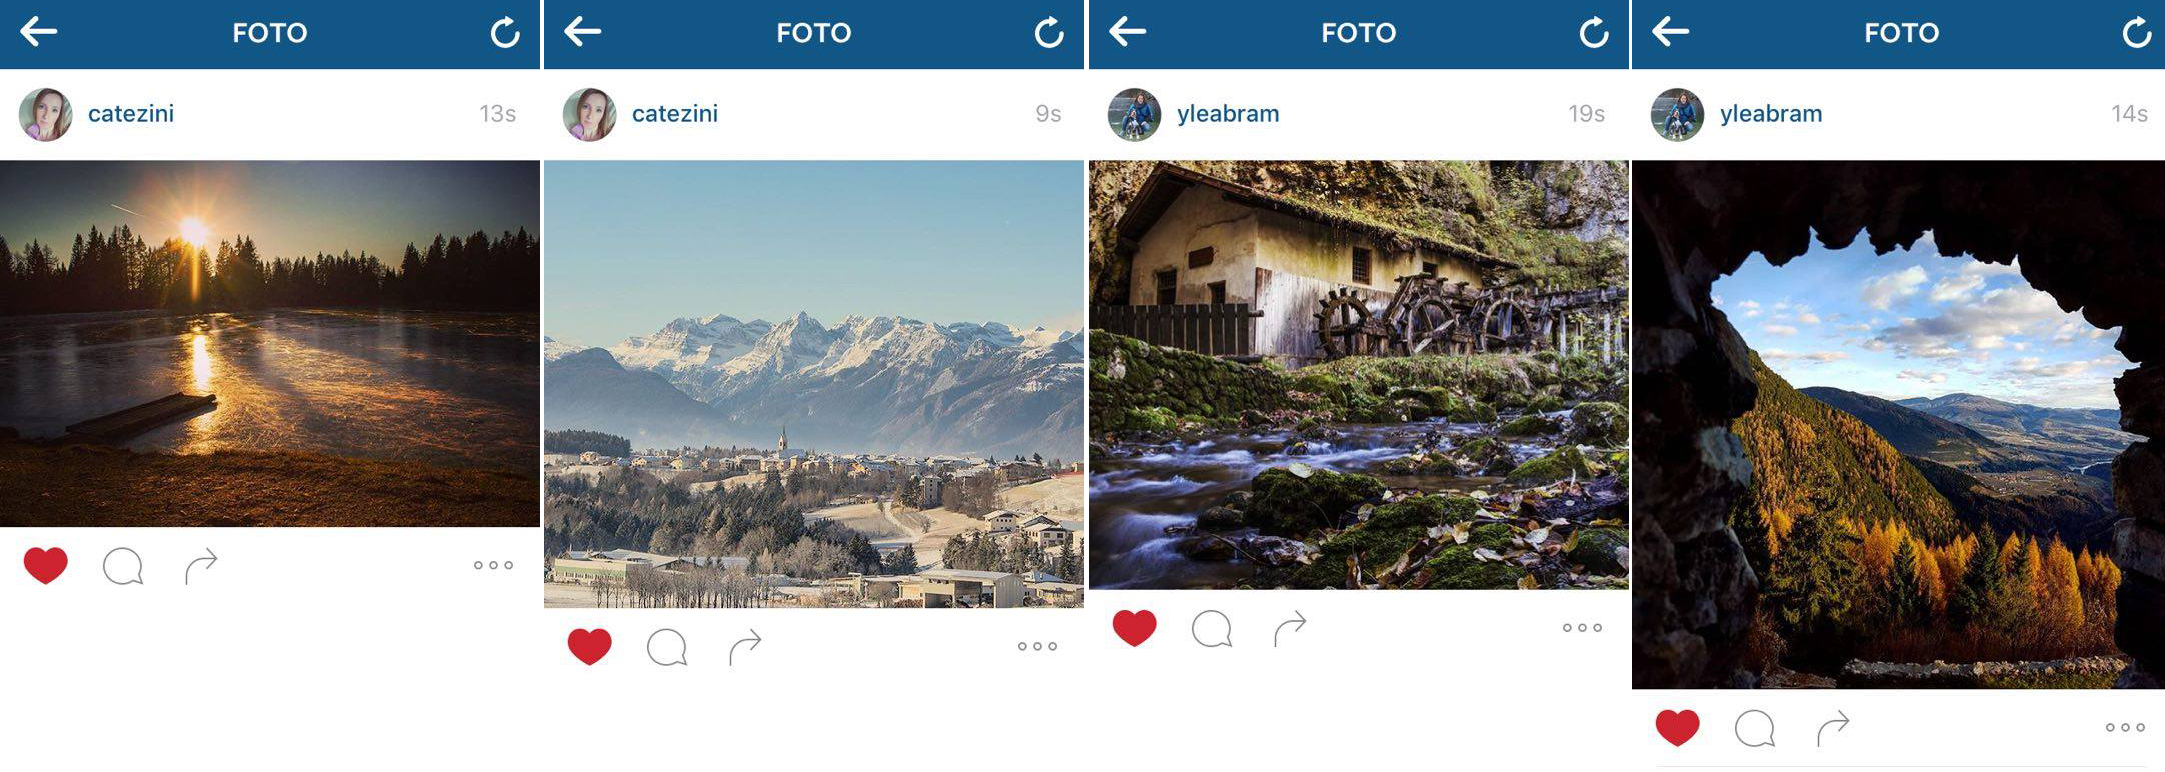 INSTAGRAMMERS catezini yleabram